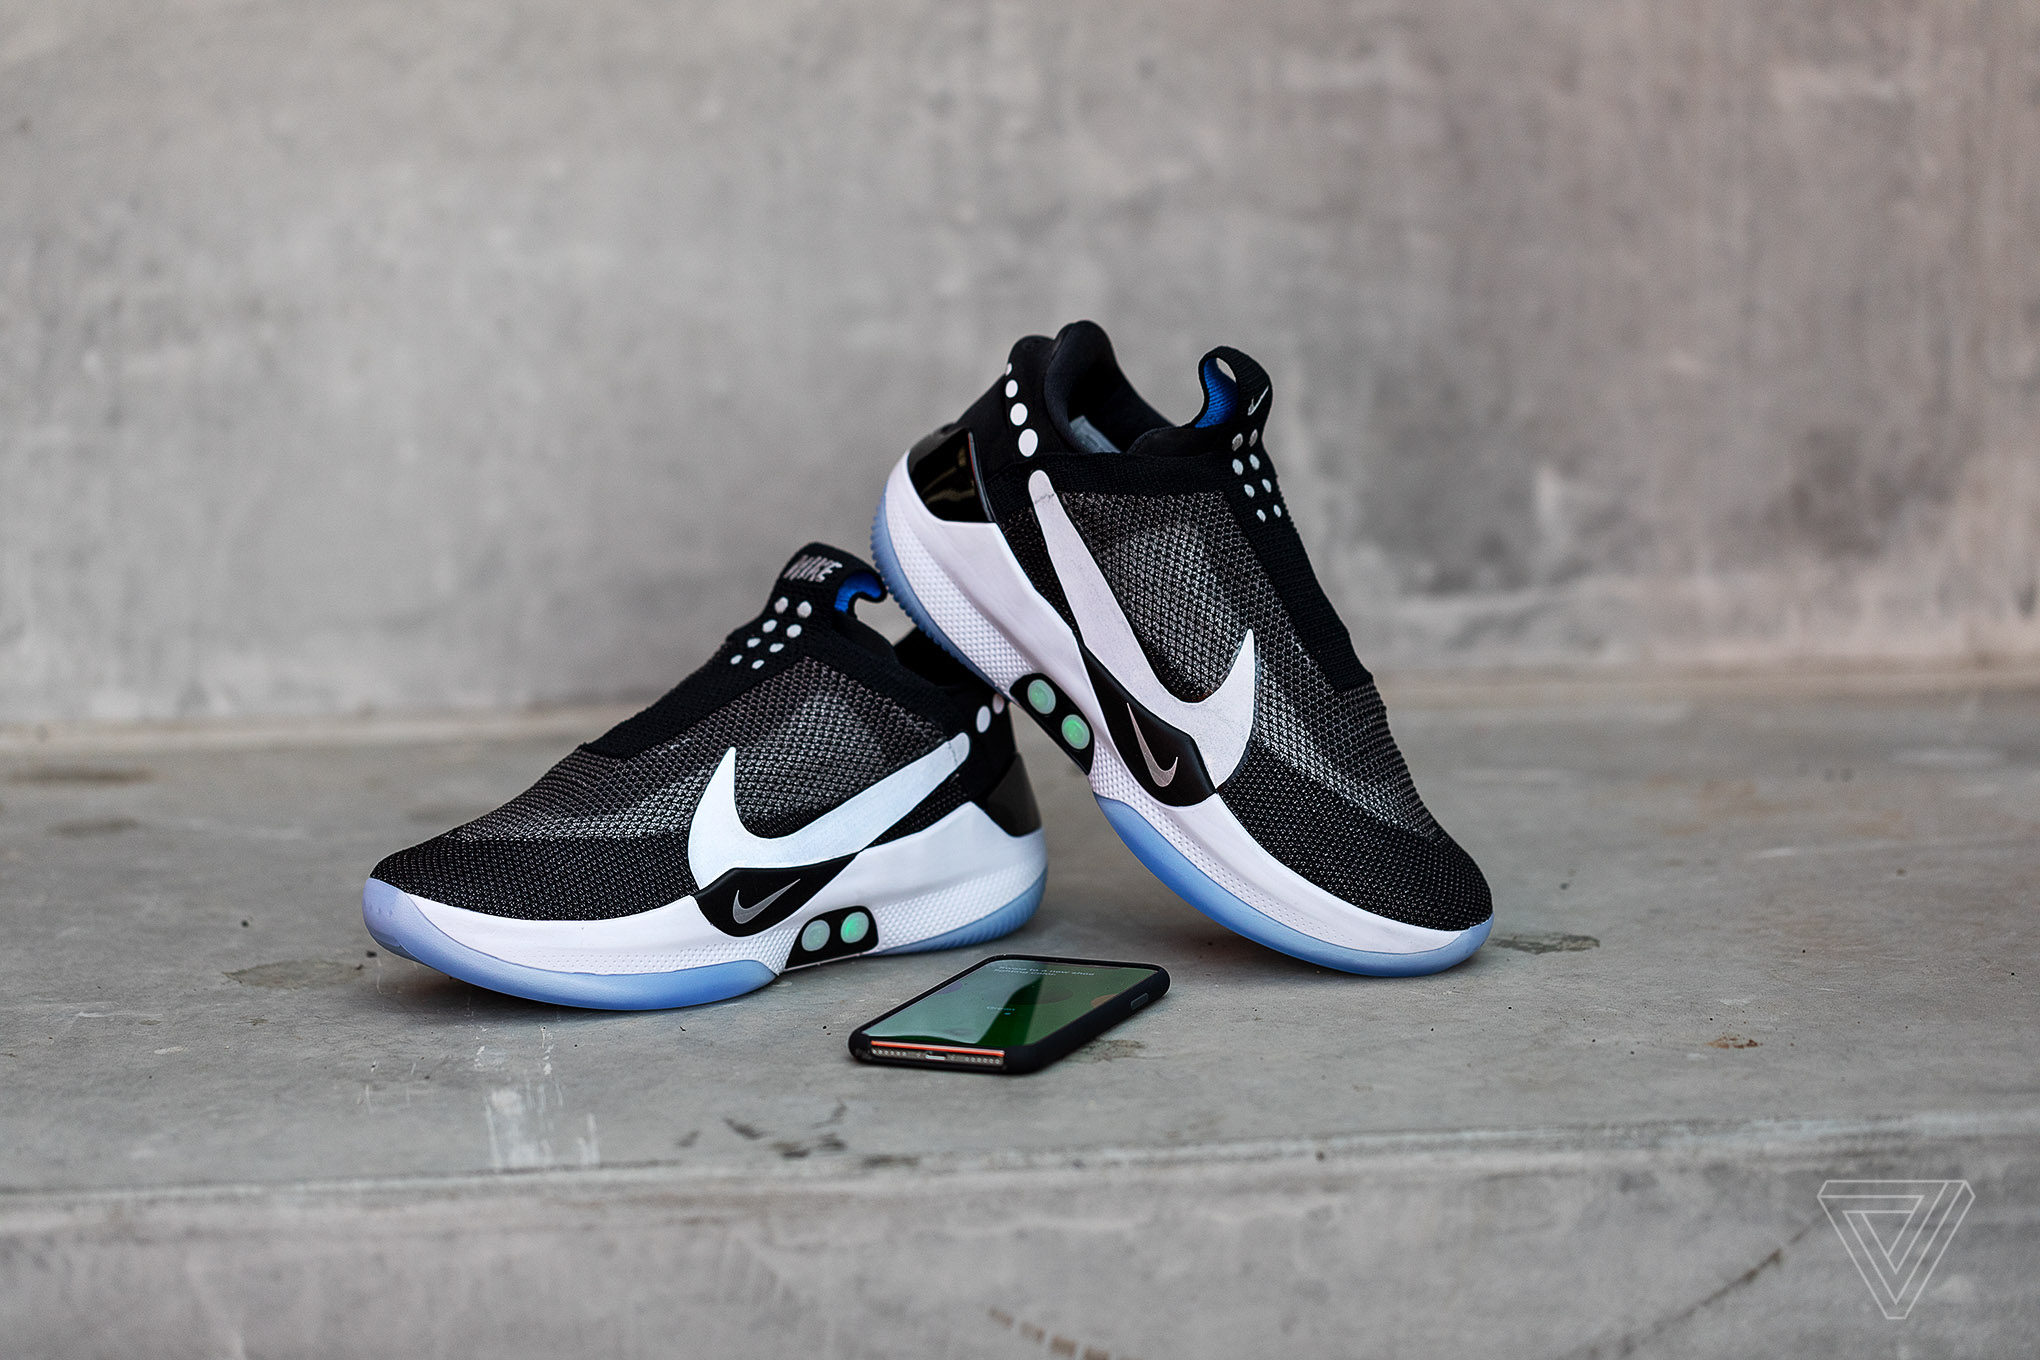 online store 7c23d 04da0 Hands-on with Nike s self-lacing, app-controlled sneaker of the future